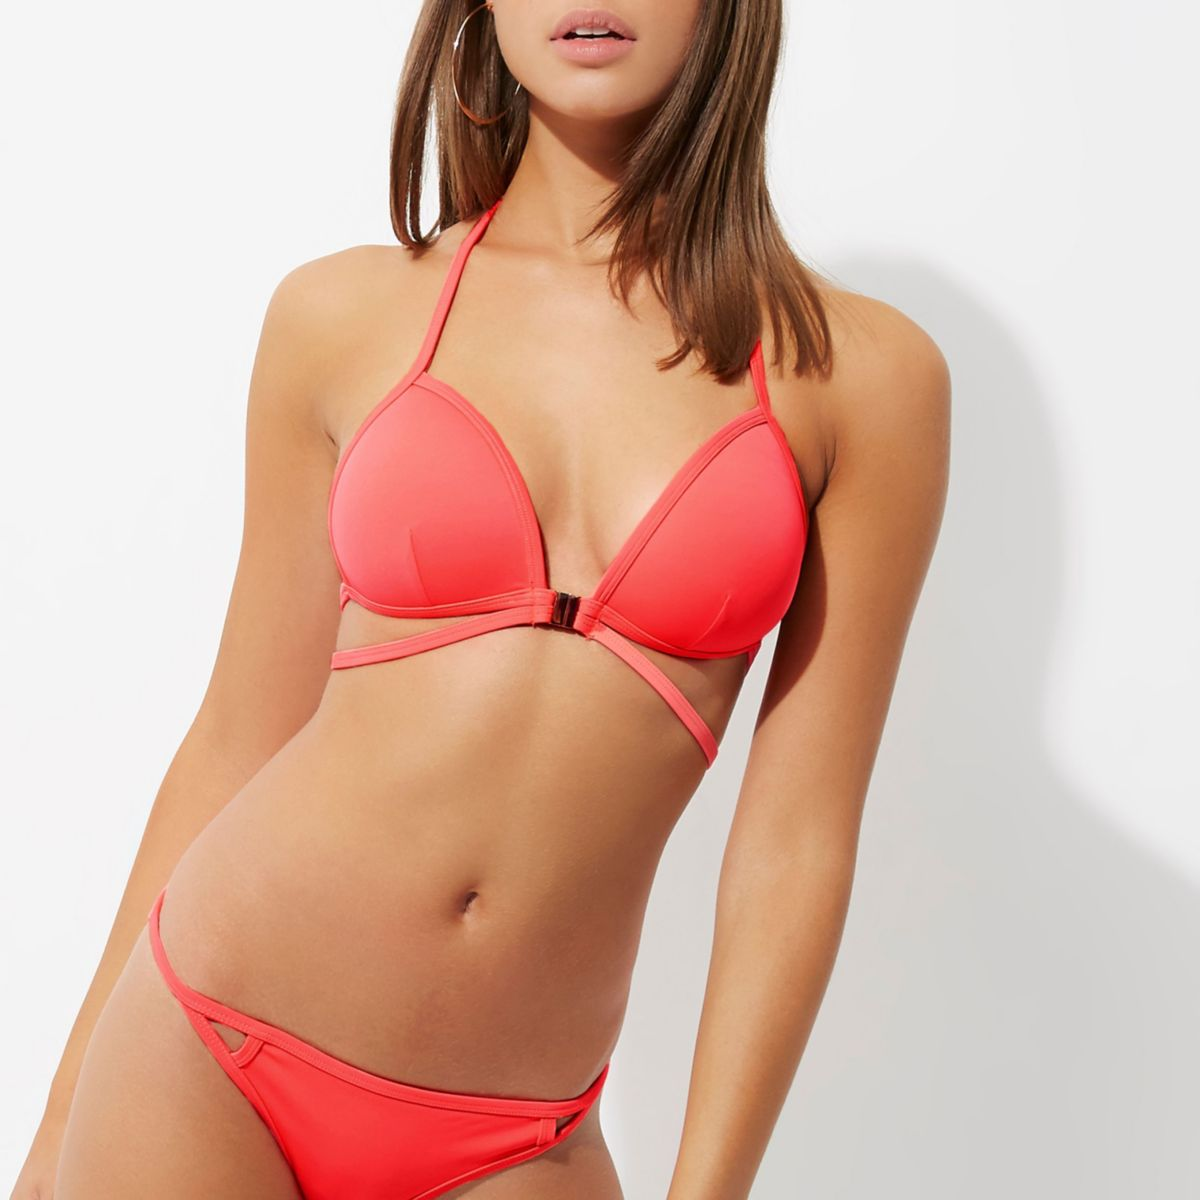 Pink strappy triangle bikini top